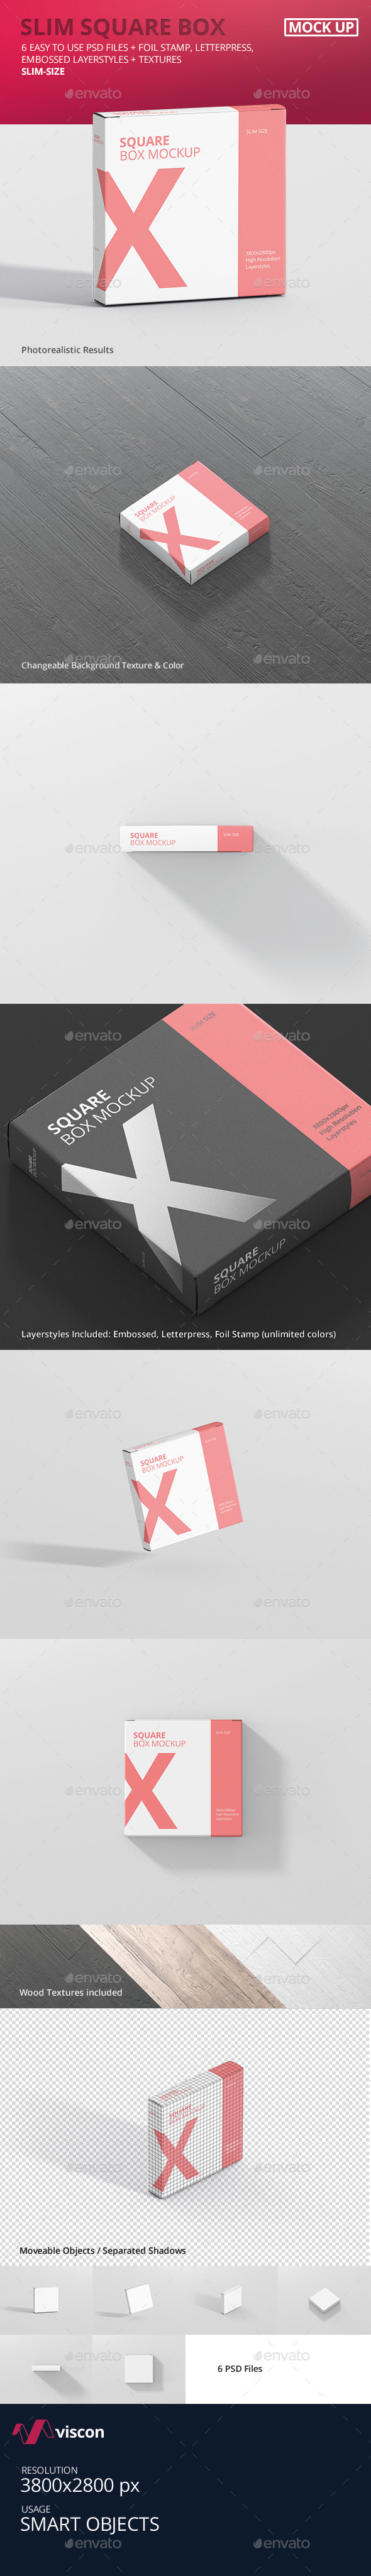 Box Mockup - Square Slim Size - Miscellaneous Packaging